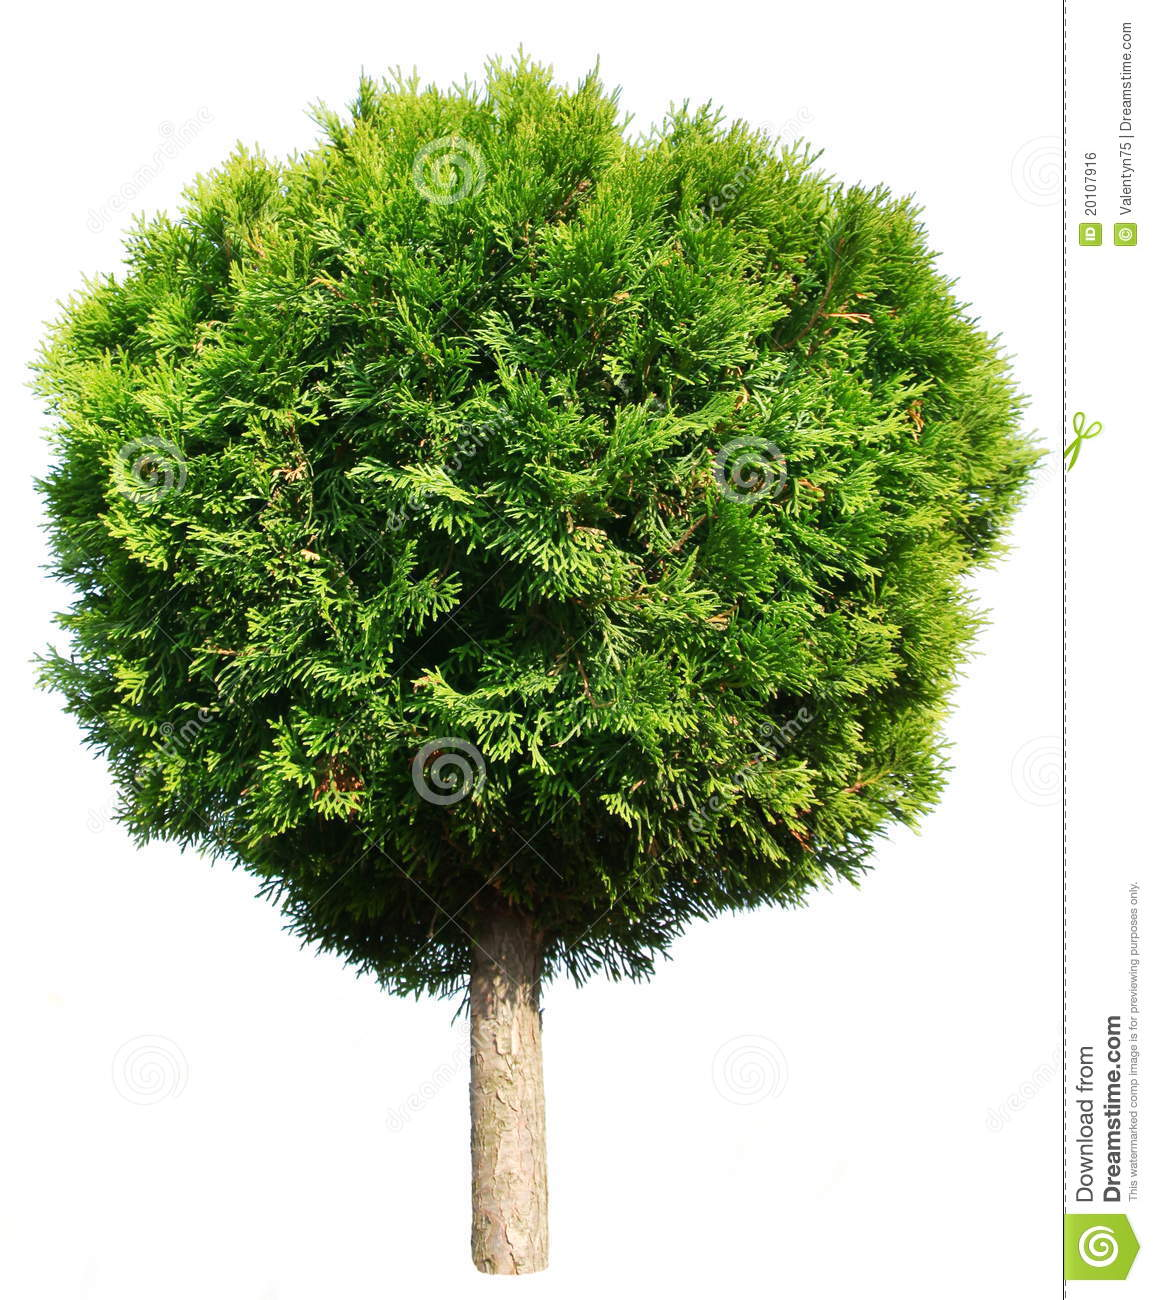 Thuja Tree Royalty Free Stock Image.